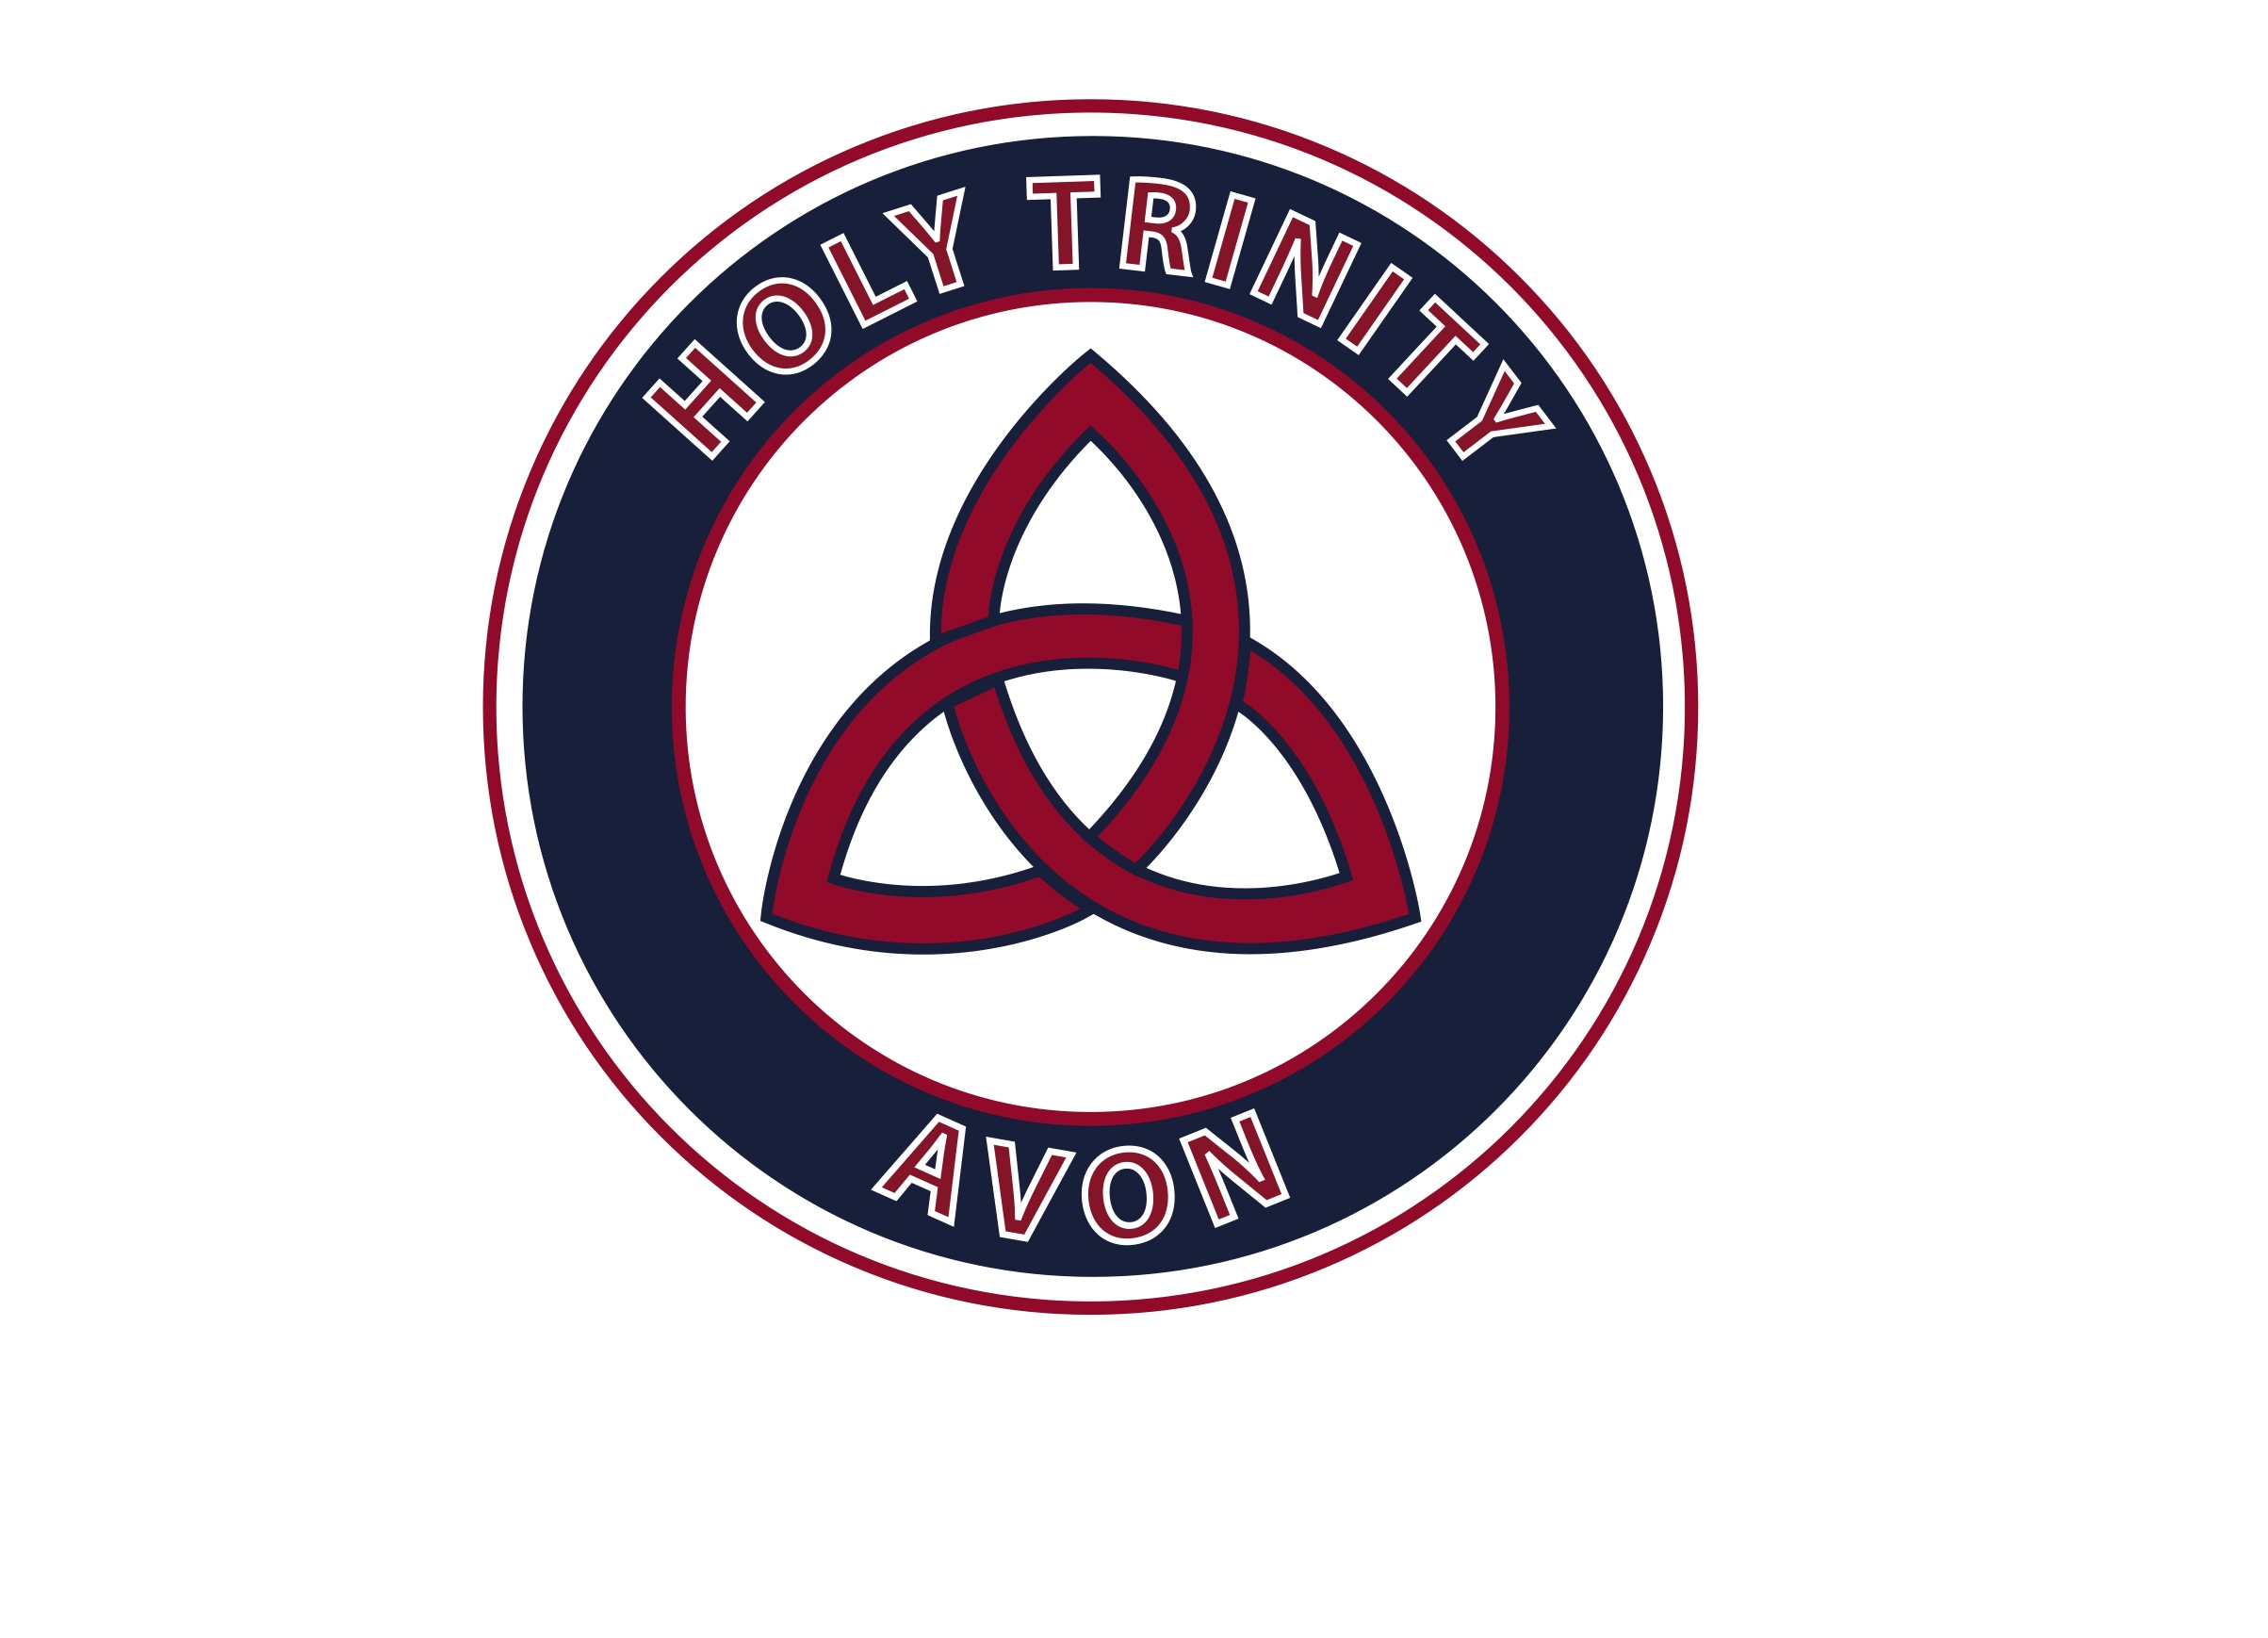 Principals message about us holy trinity school welcome to holy trinity school we feel blessed to have the opportunity to serve as principals of this amazing faith community holy trinity students learn biocorpaavc Image collections